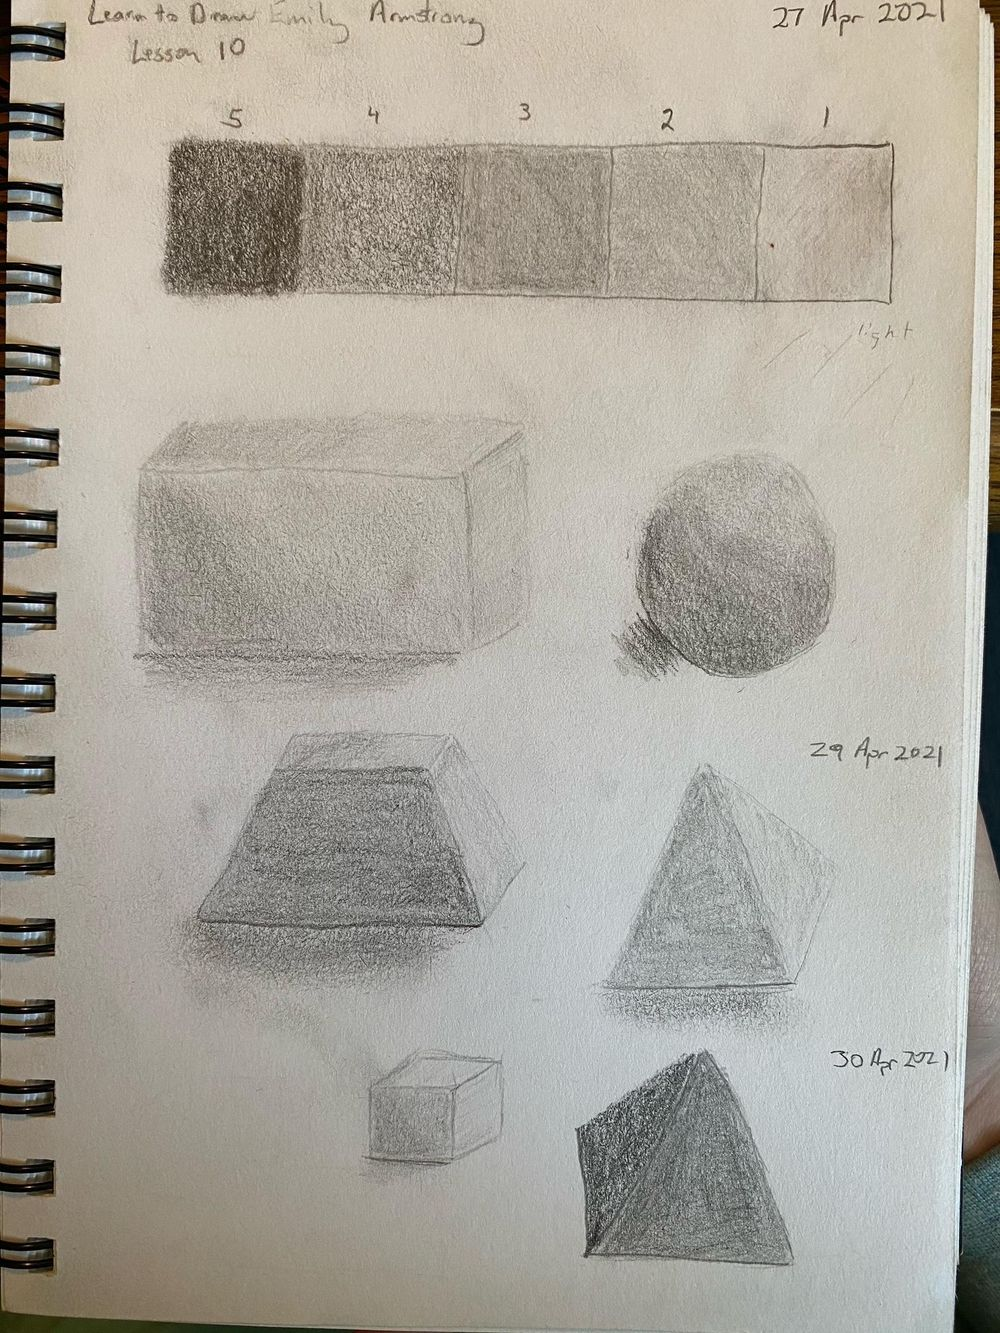 Learn to Draw: Complete Course - Exercises - image 2 - student project